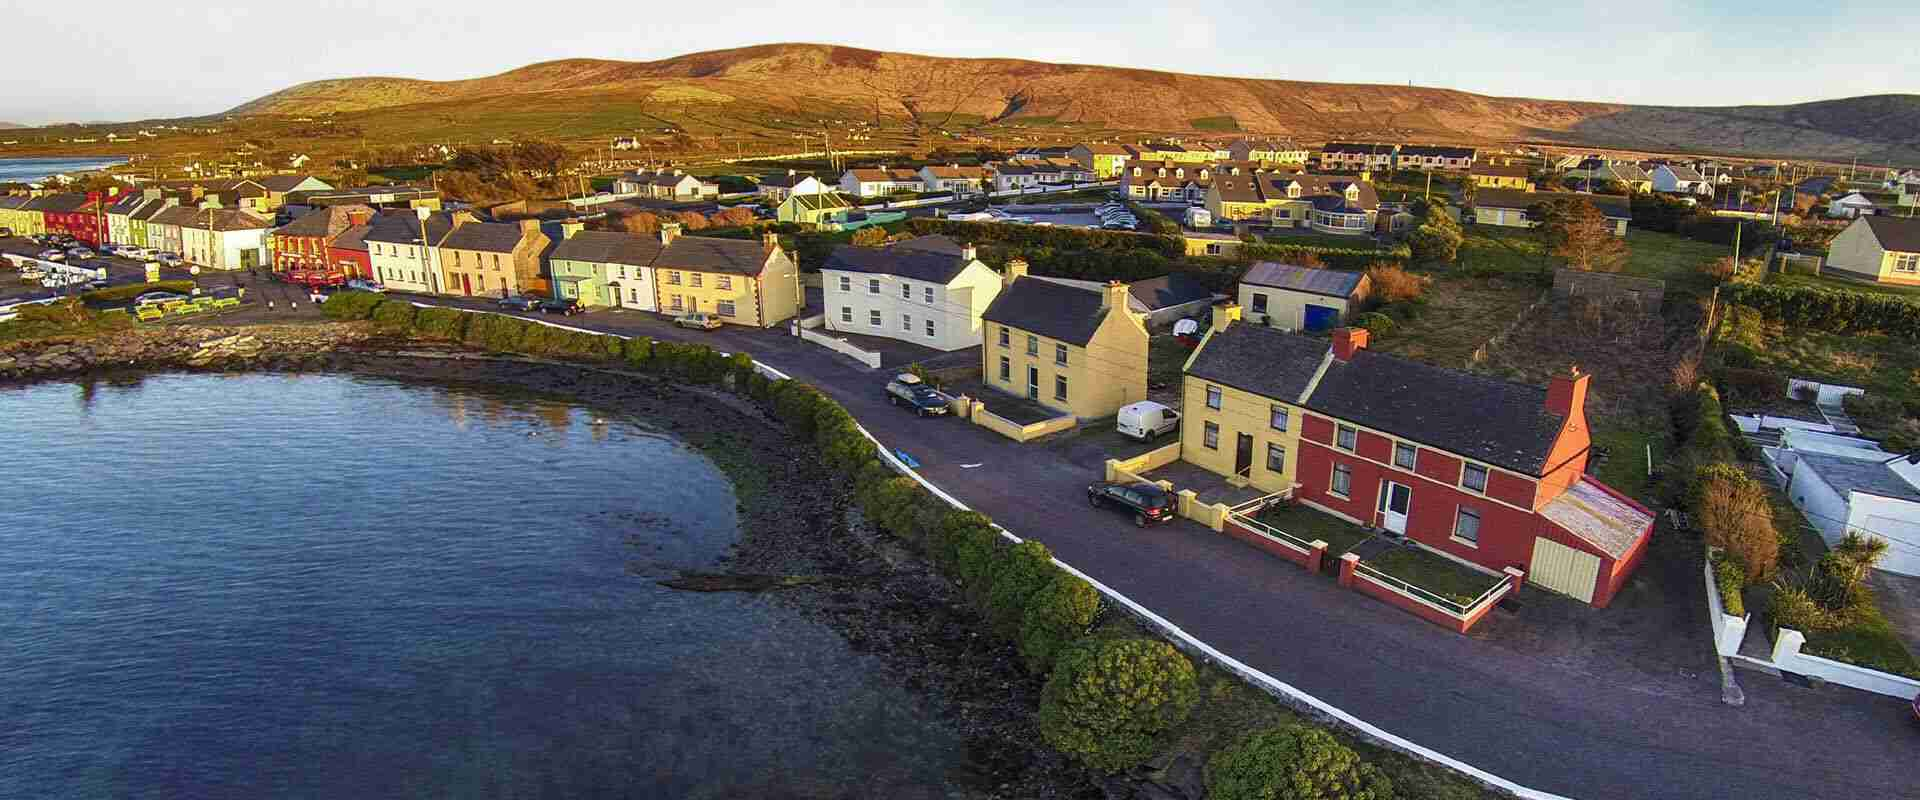 Village in Kerry